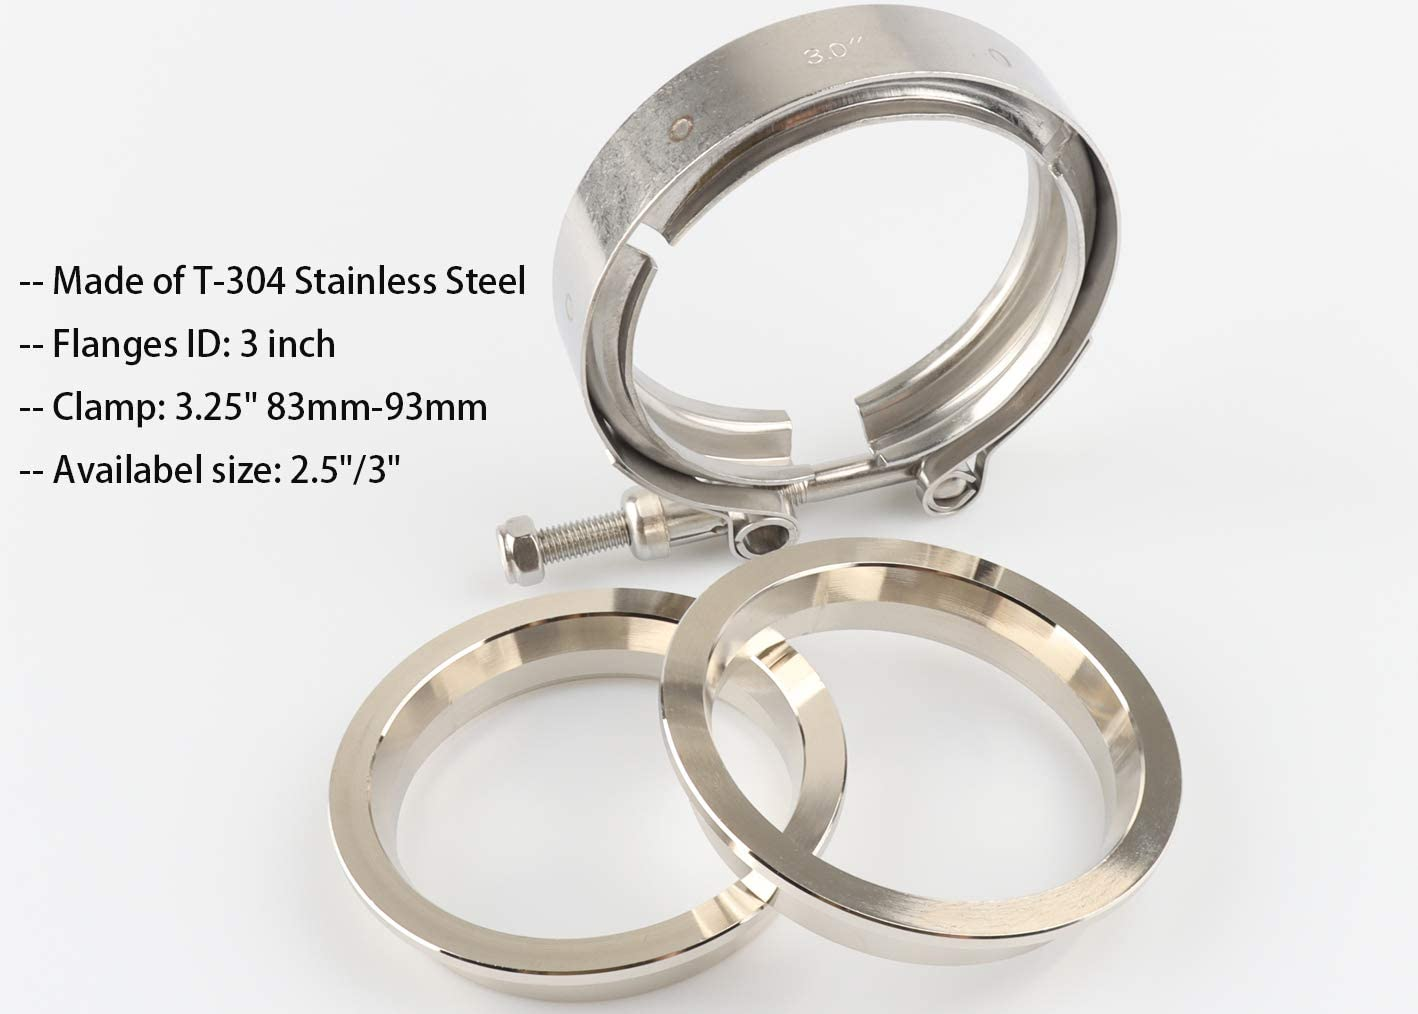 V-Band Clamp Flange Kit 3in SS Vband exhaust clamp with Male Female Flange for Turbo Downpipes Exhaust Systems 3 Inch Stainless Steel V Band Clamp